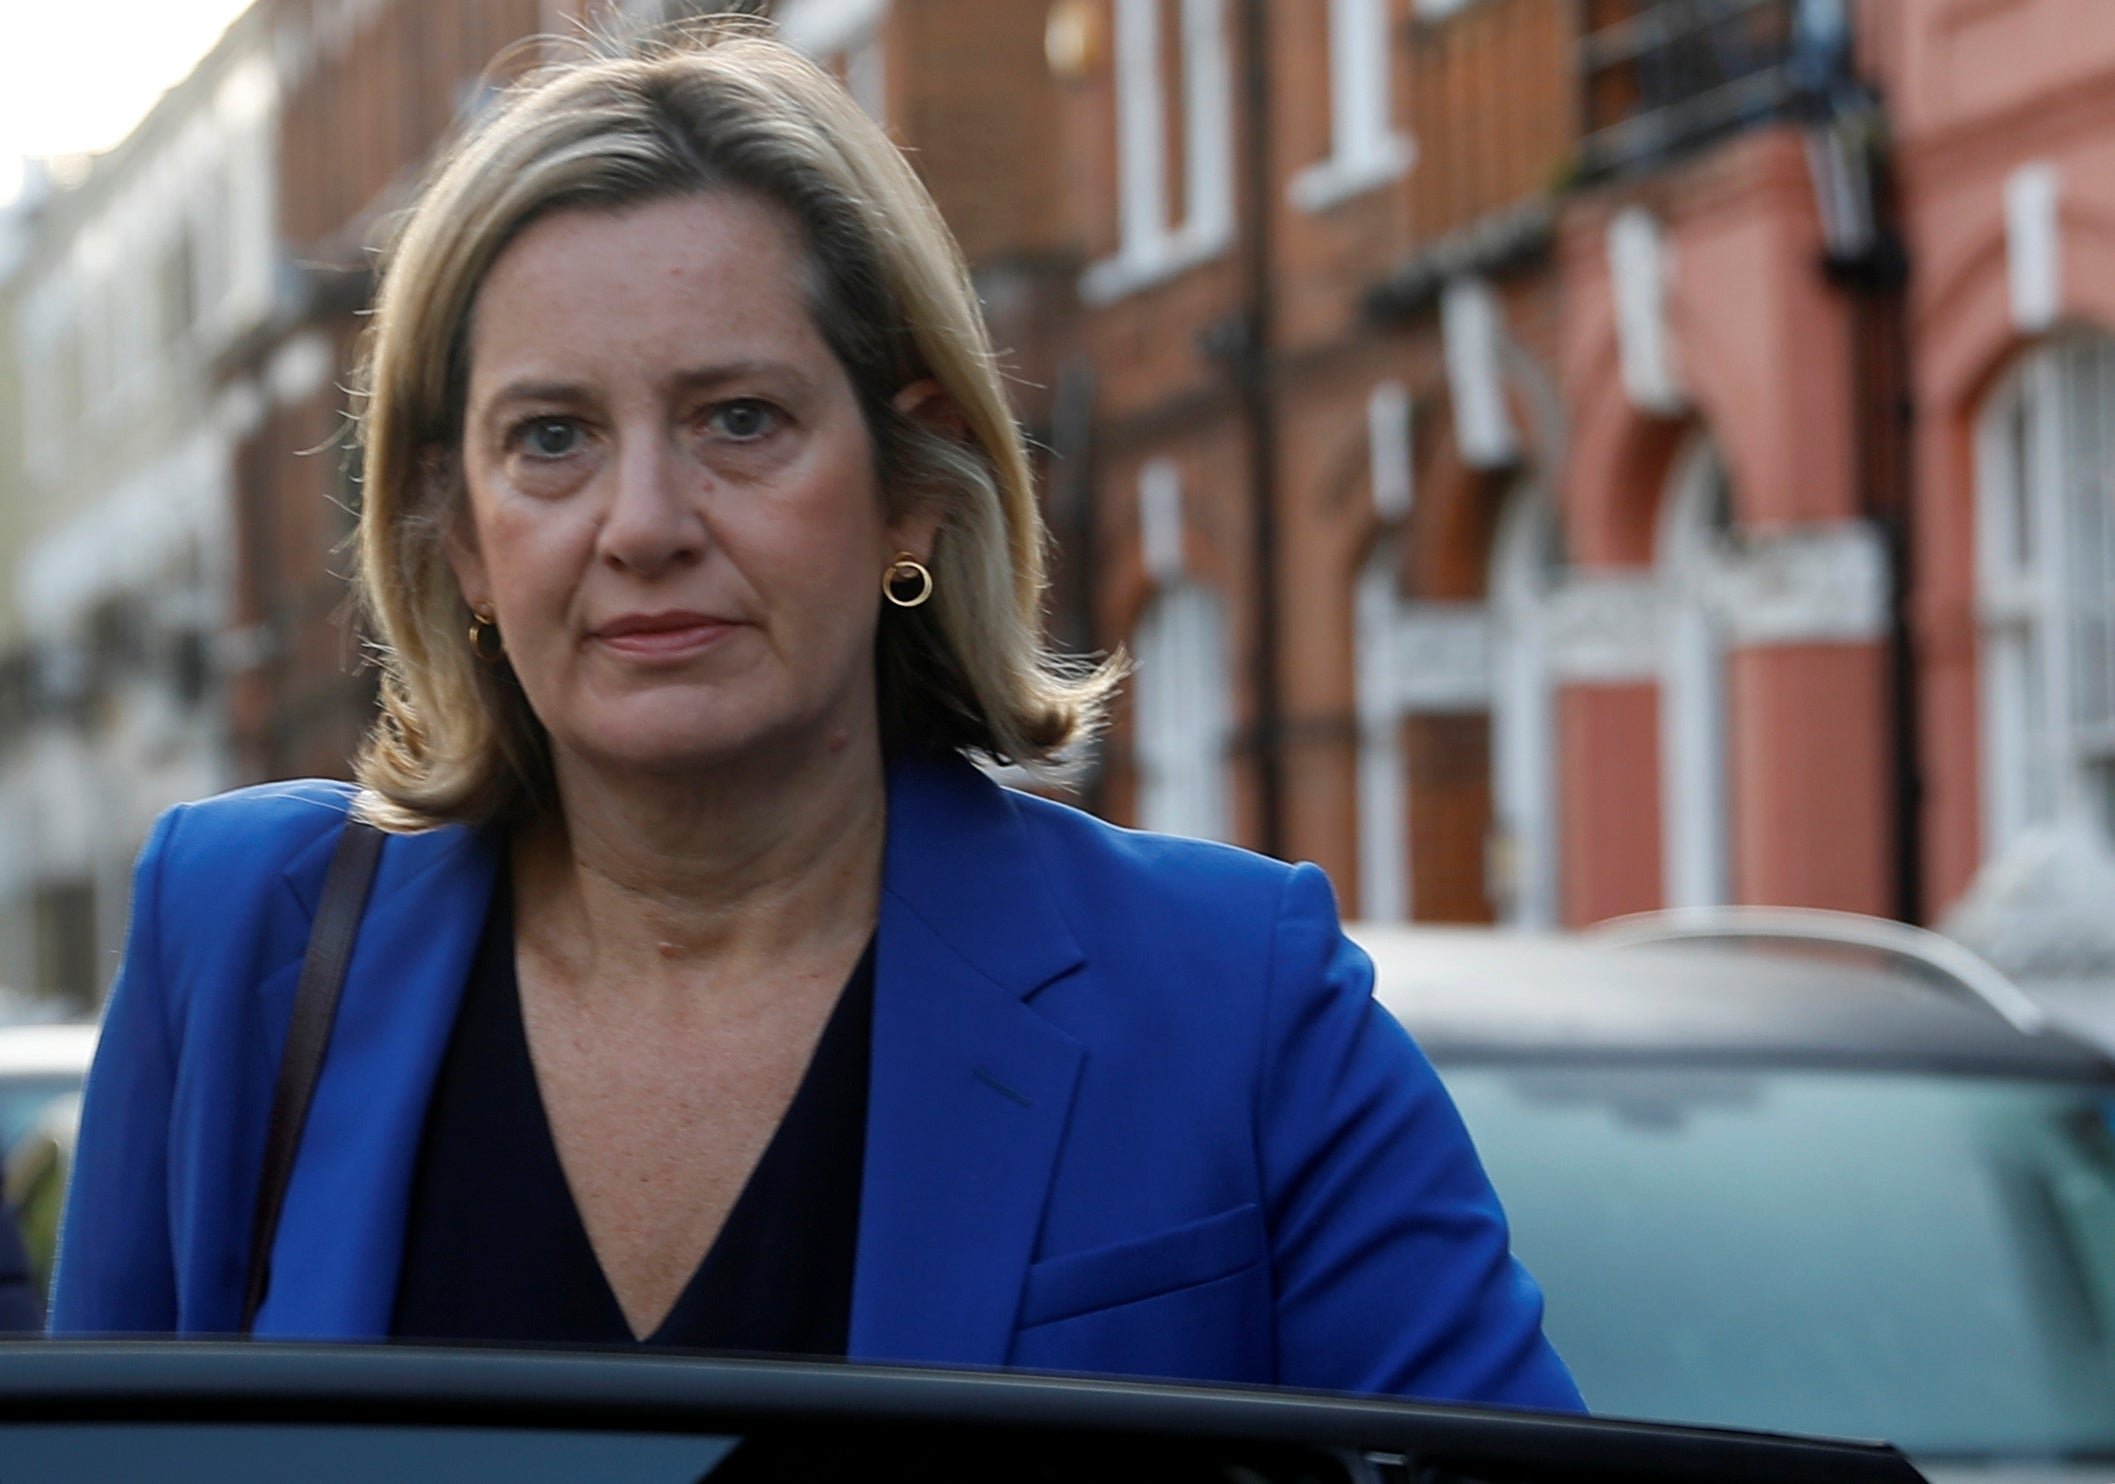 Brexit: Glimmer of hope for Boris Johnson's deal as ex-cabinet minister Amber Rudd says she will back it